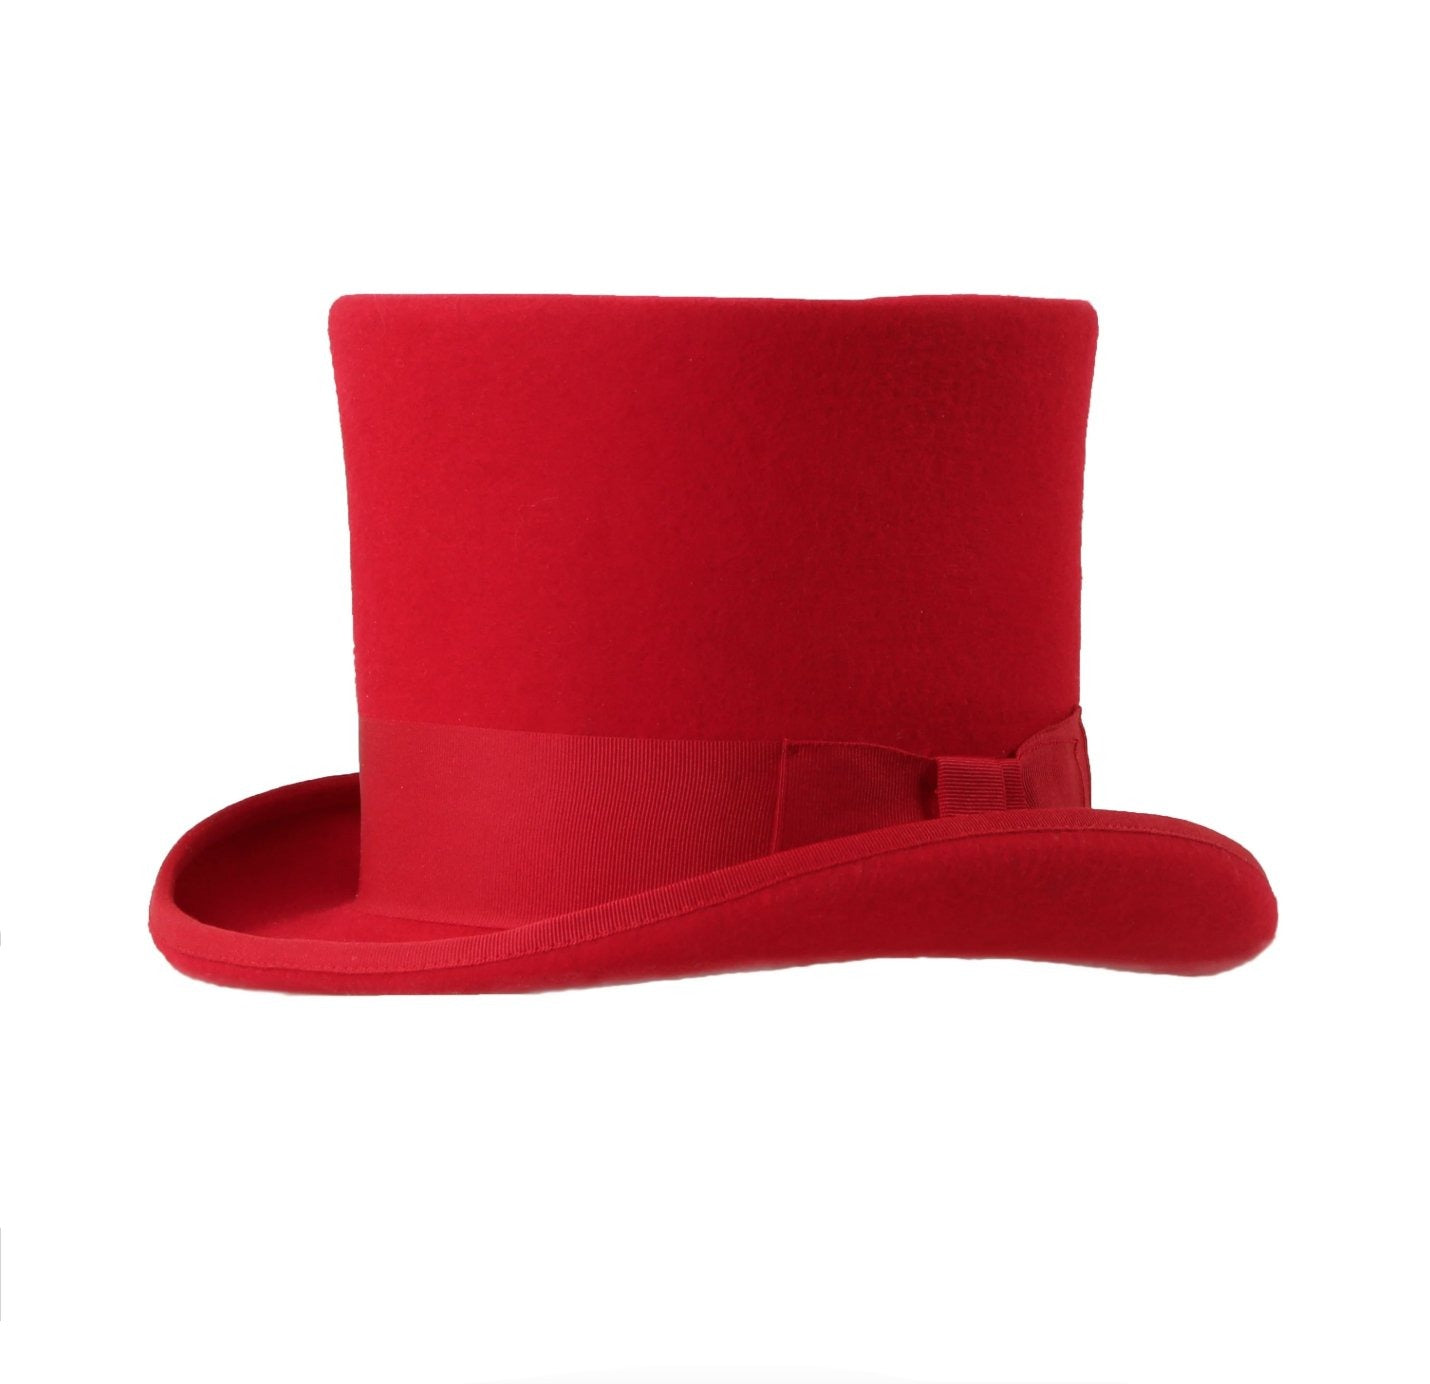 Mens Dress Tophat in Red